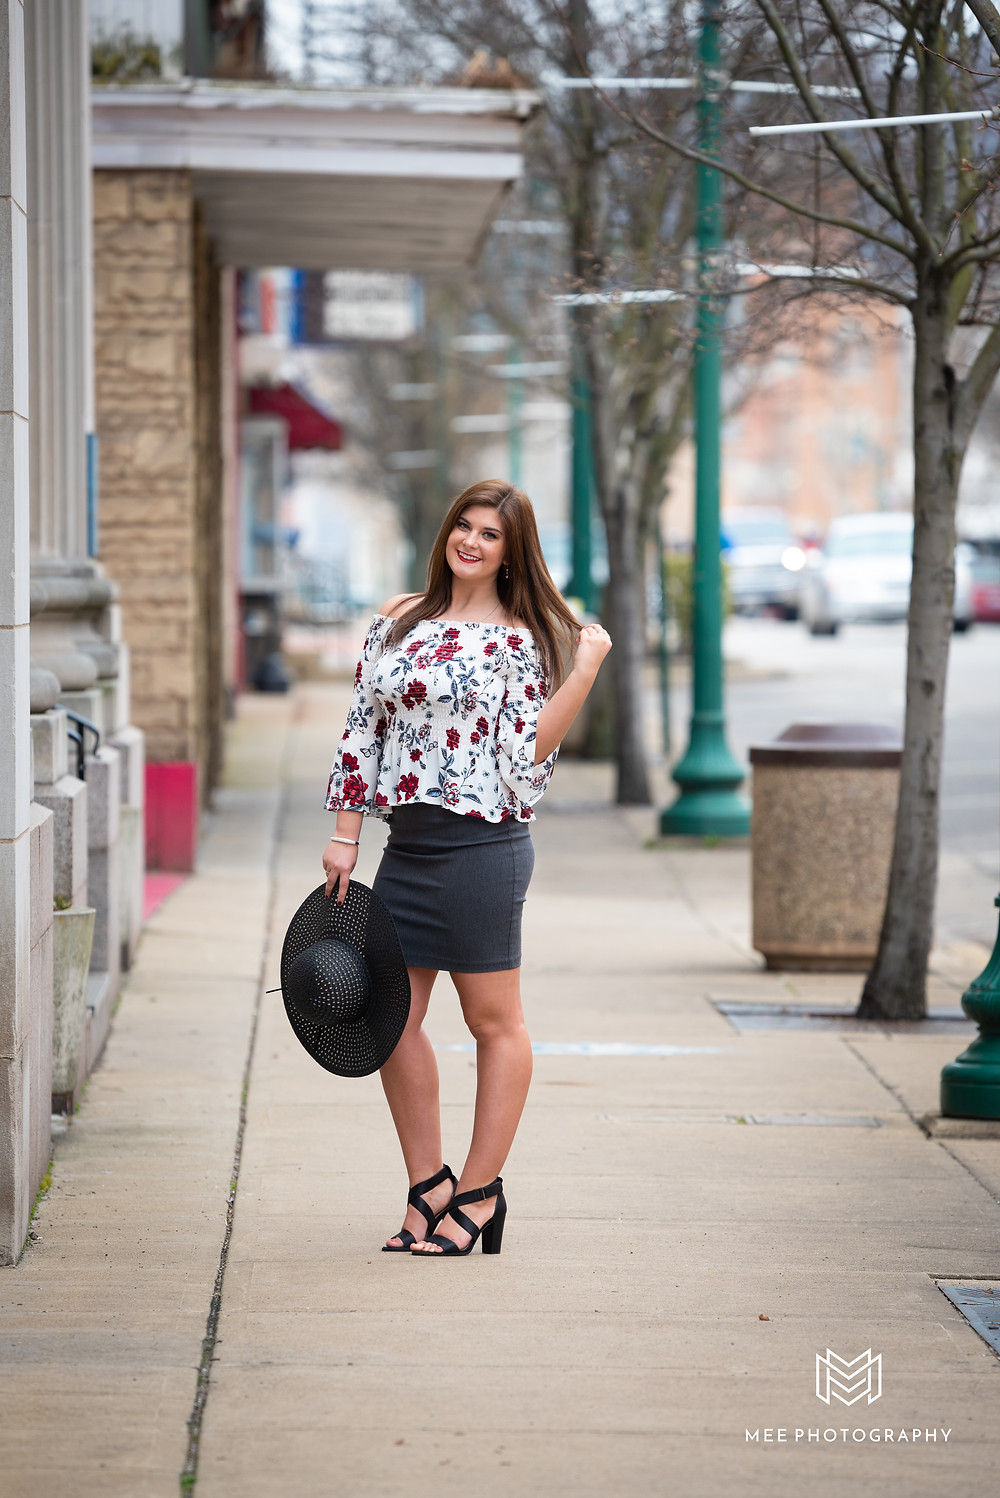 East Liverpool senior session with girl wearing a white blouse, gray skirt, and black heels.